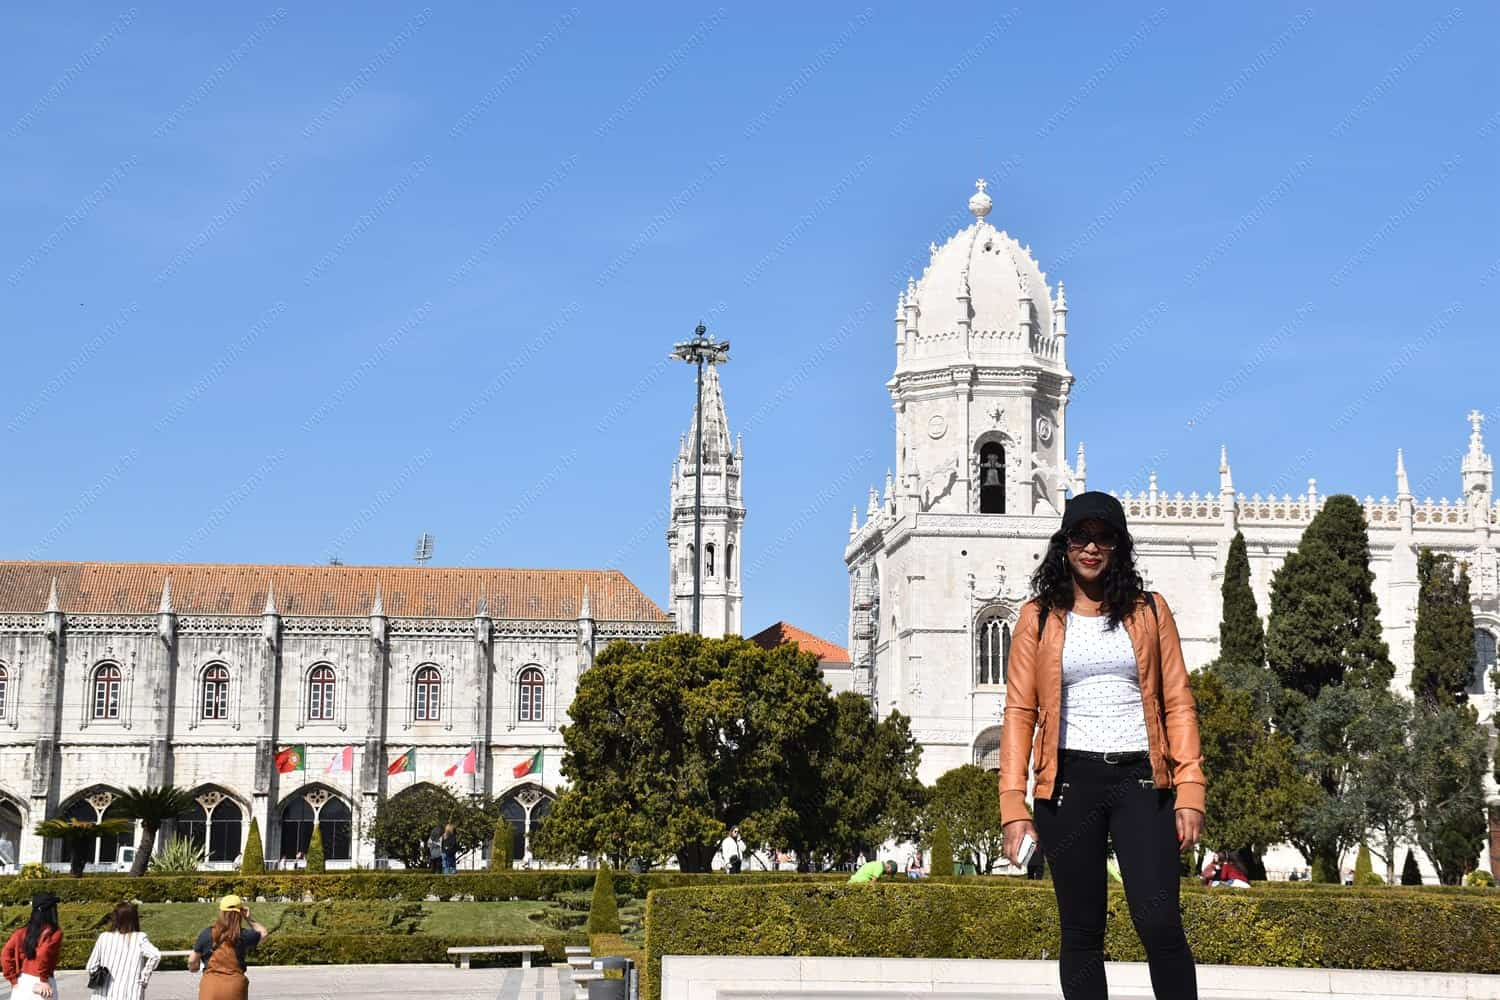 Jeronimos Monastery - Top Attractions to Visit in Lisbon